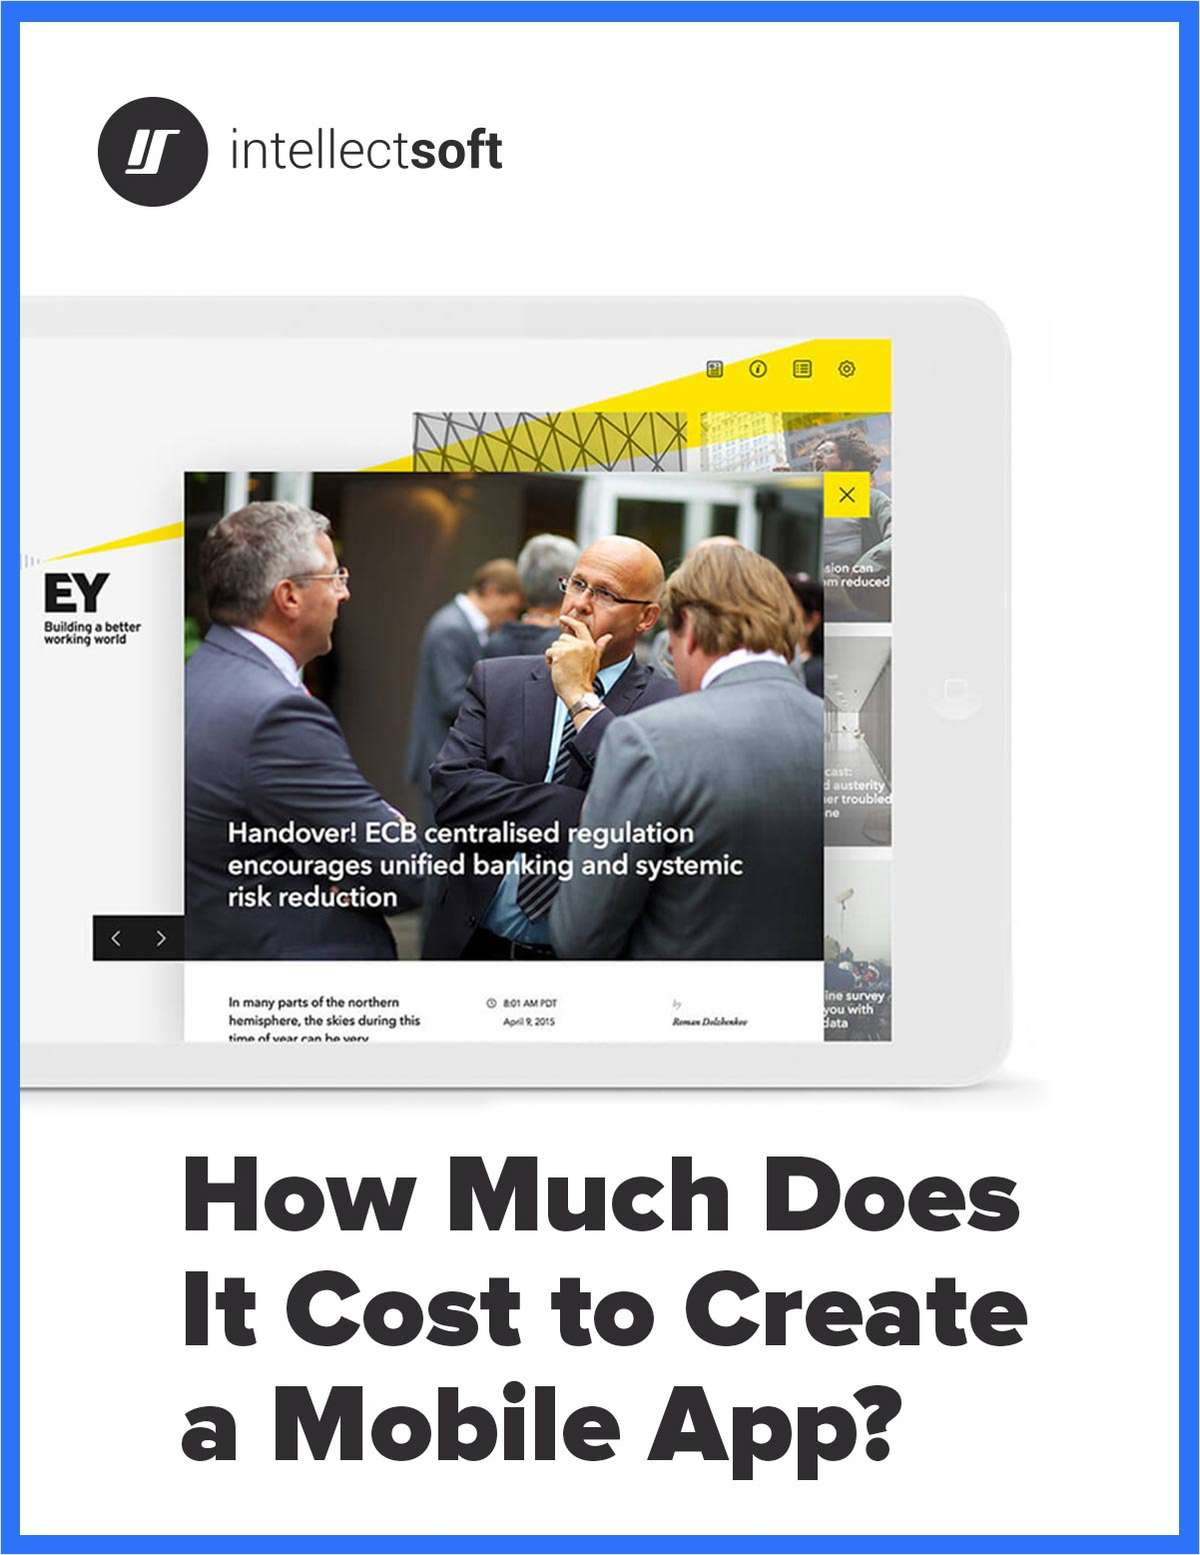 How Much Does It Cost to Create a Mobile App?